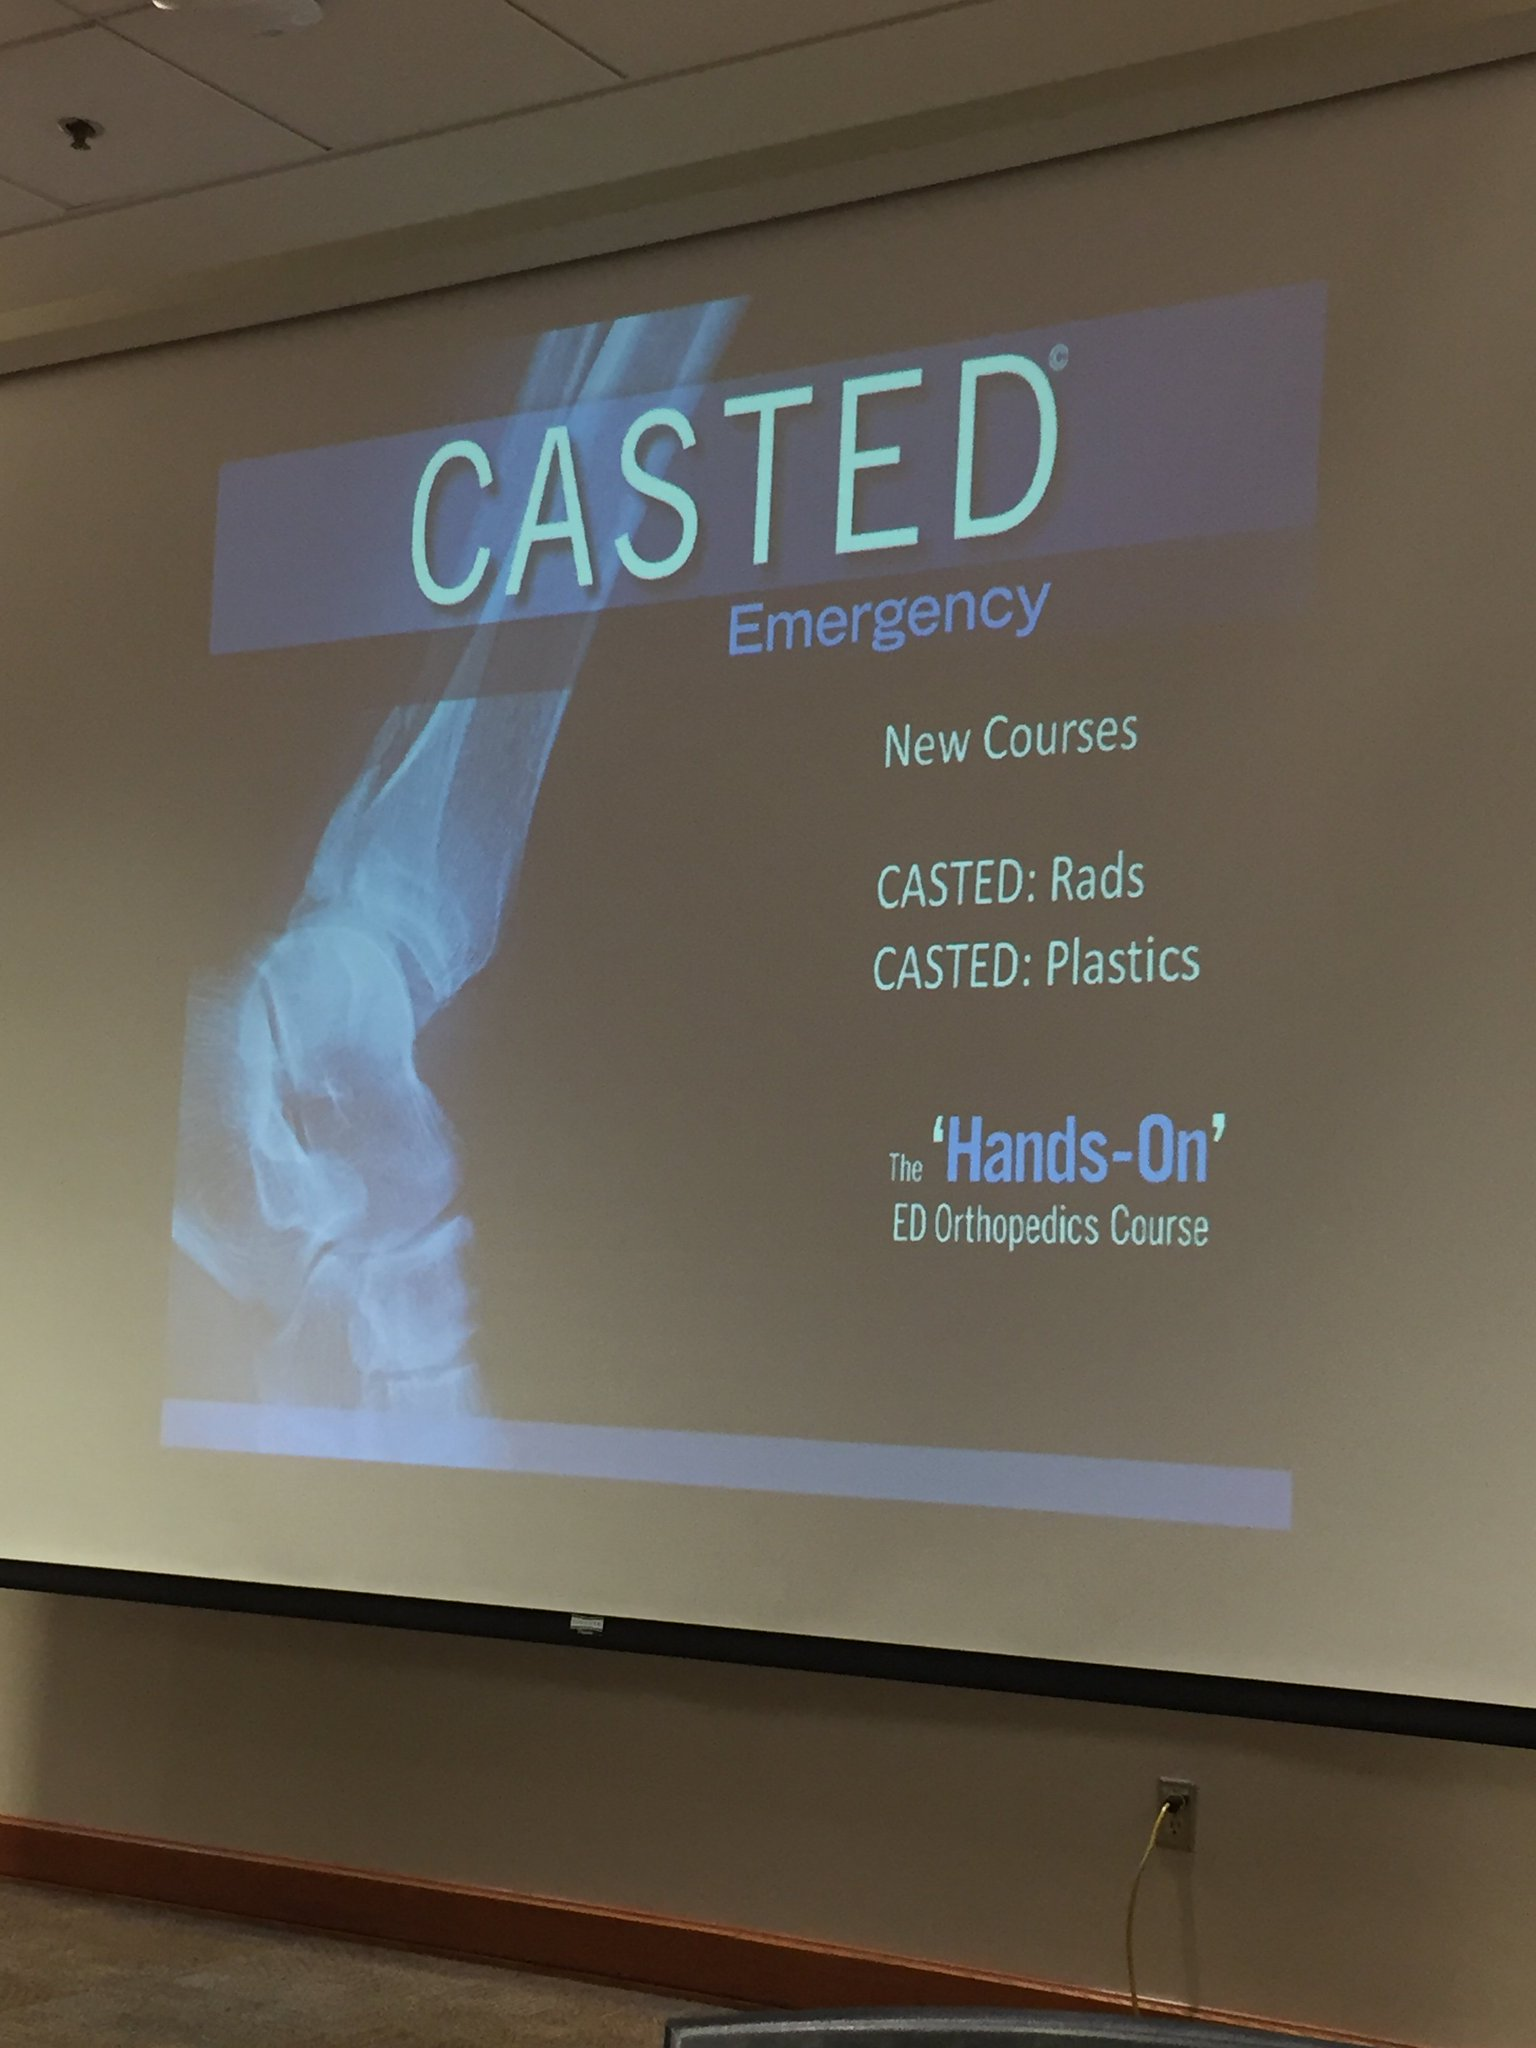 Thumbnail for Casted 2 Day Course at EMU17 #Casted